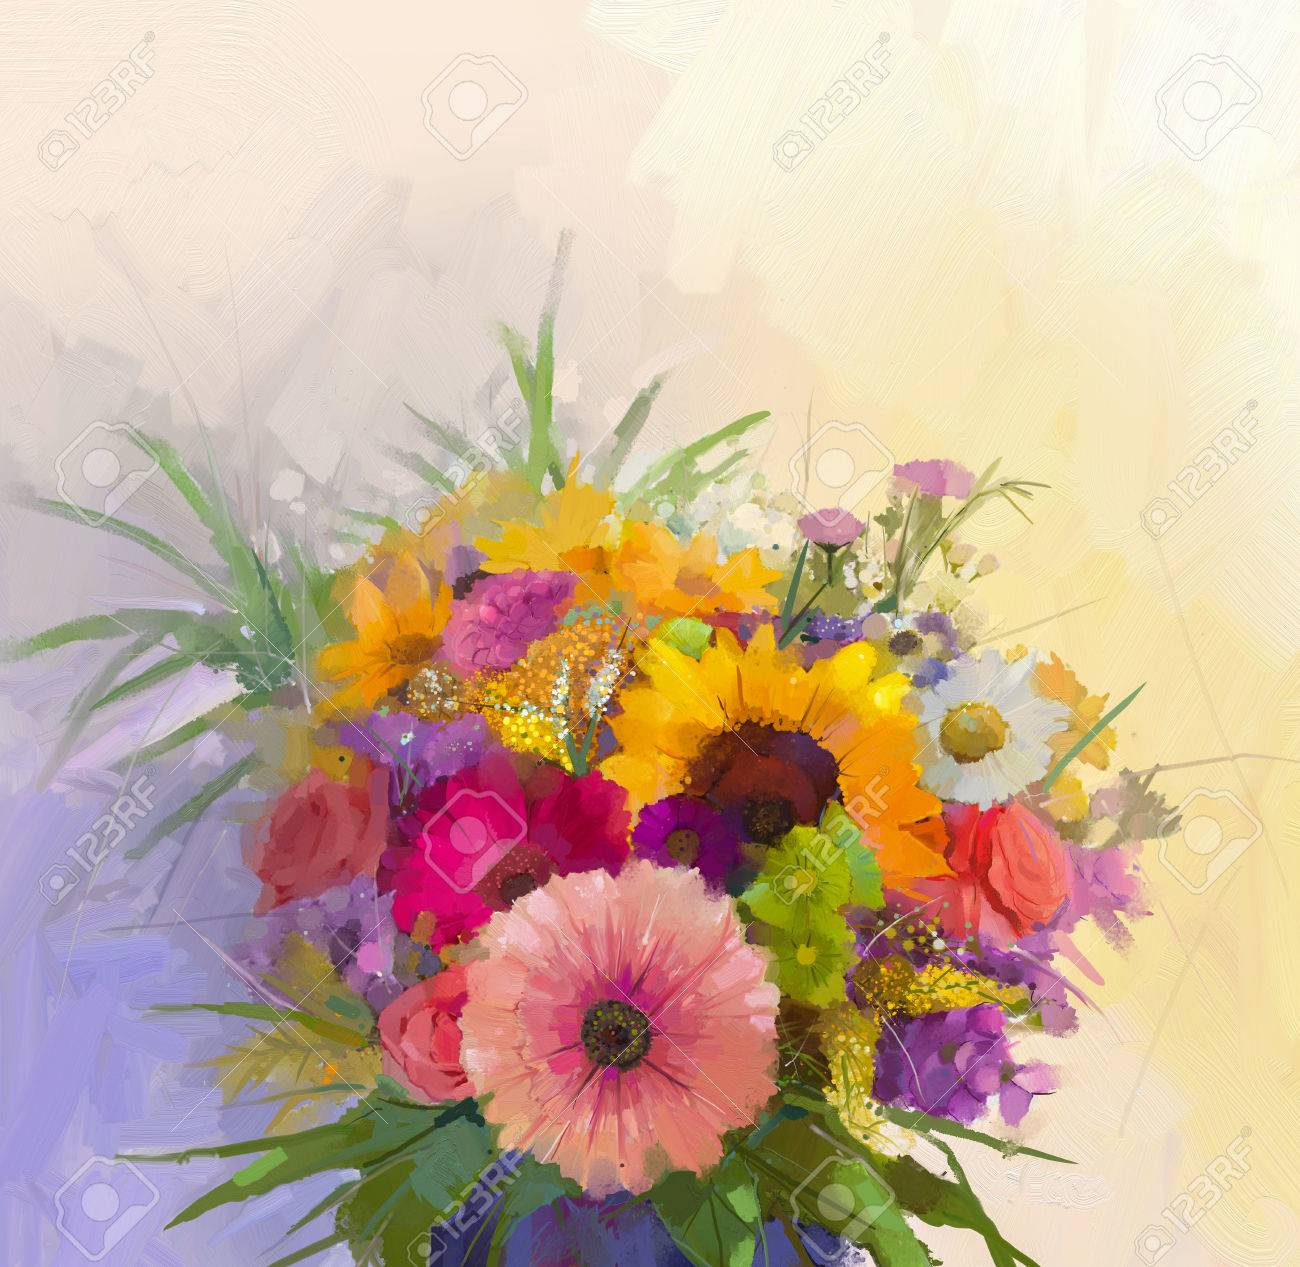 Vase with still life a bouquet of flowers oil painting stock photo stock photo vase with still life a bouquet of flowers oil painting izmirmasajfo